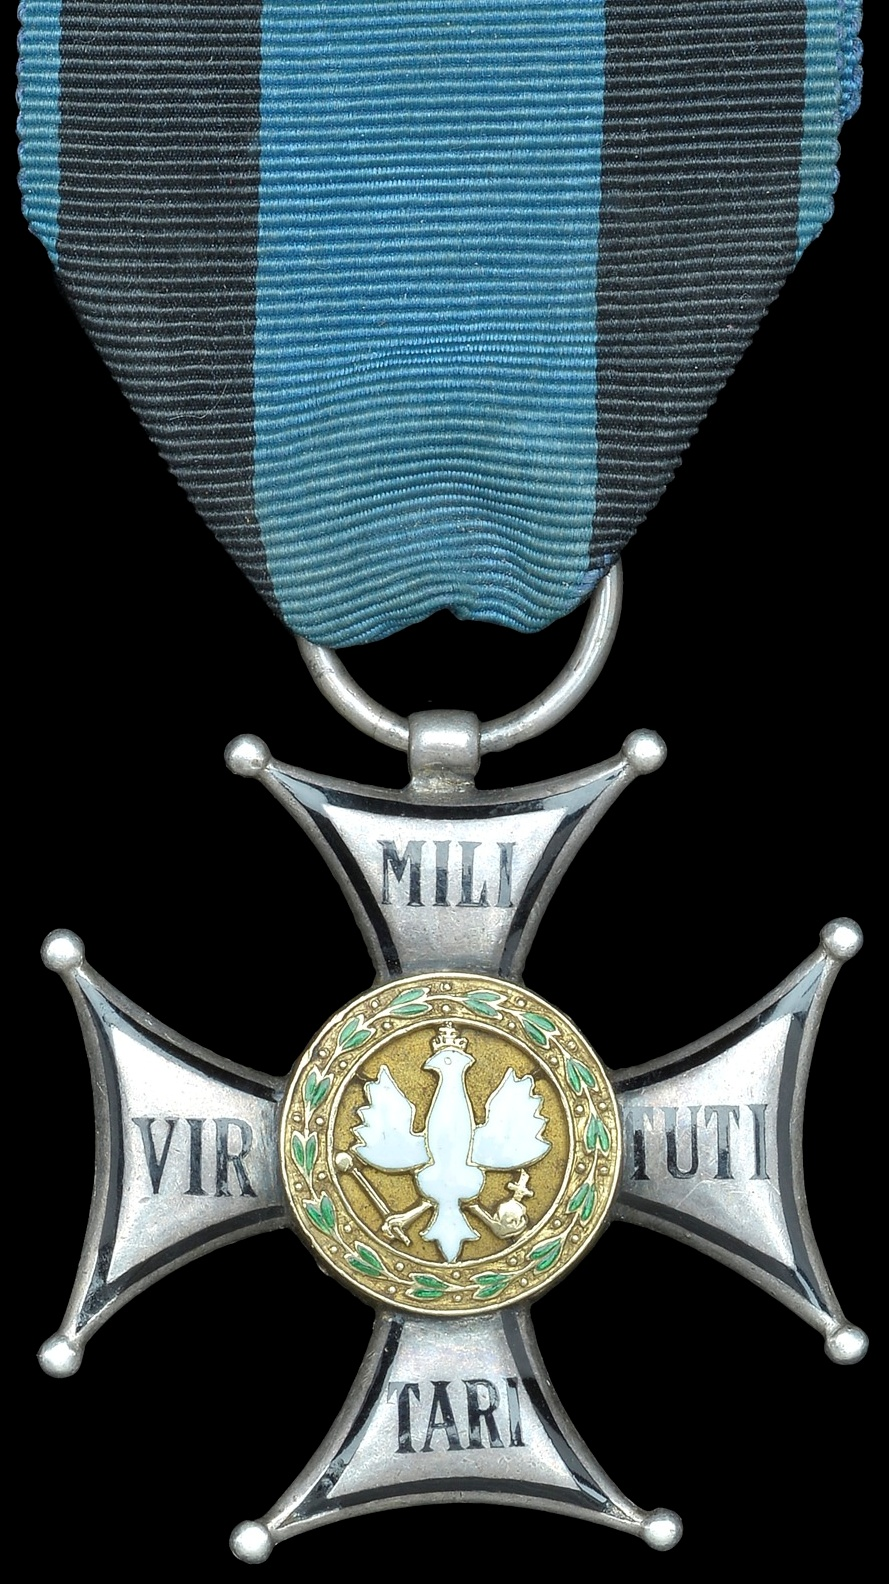 The Polish Order of Military Virtue, awarded in various classes to Polish and British recipients for Market Garden